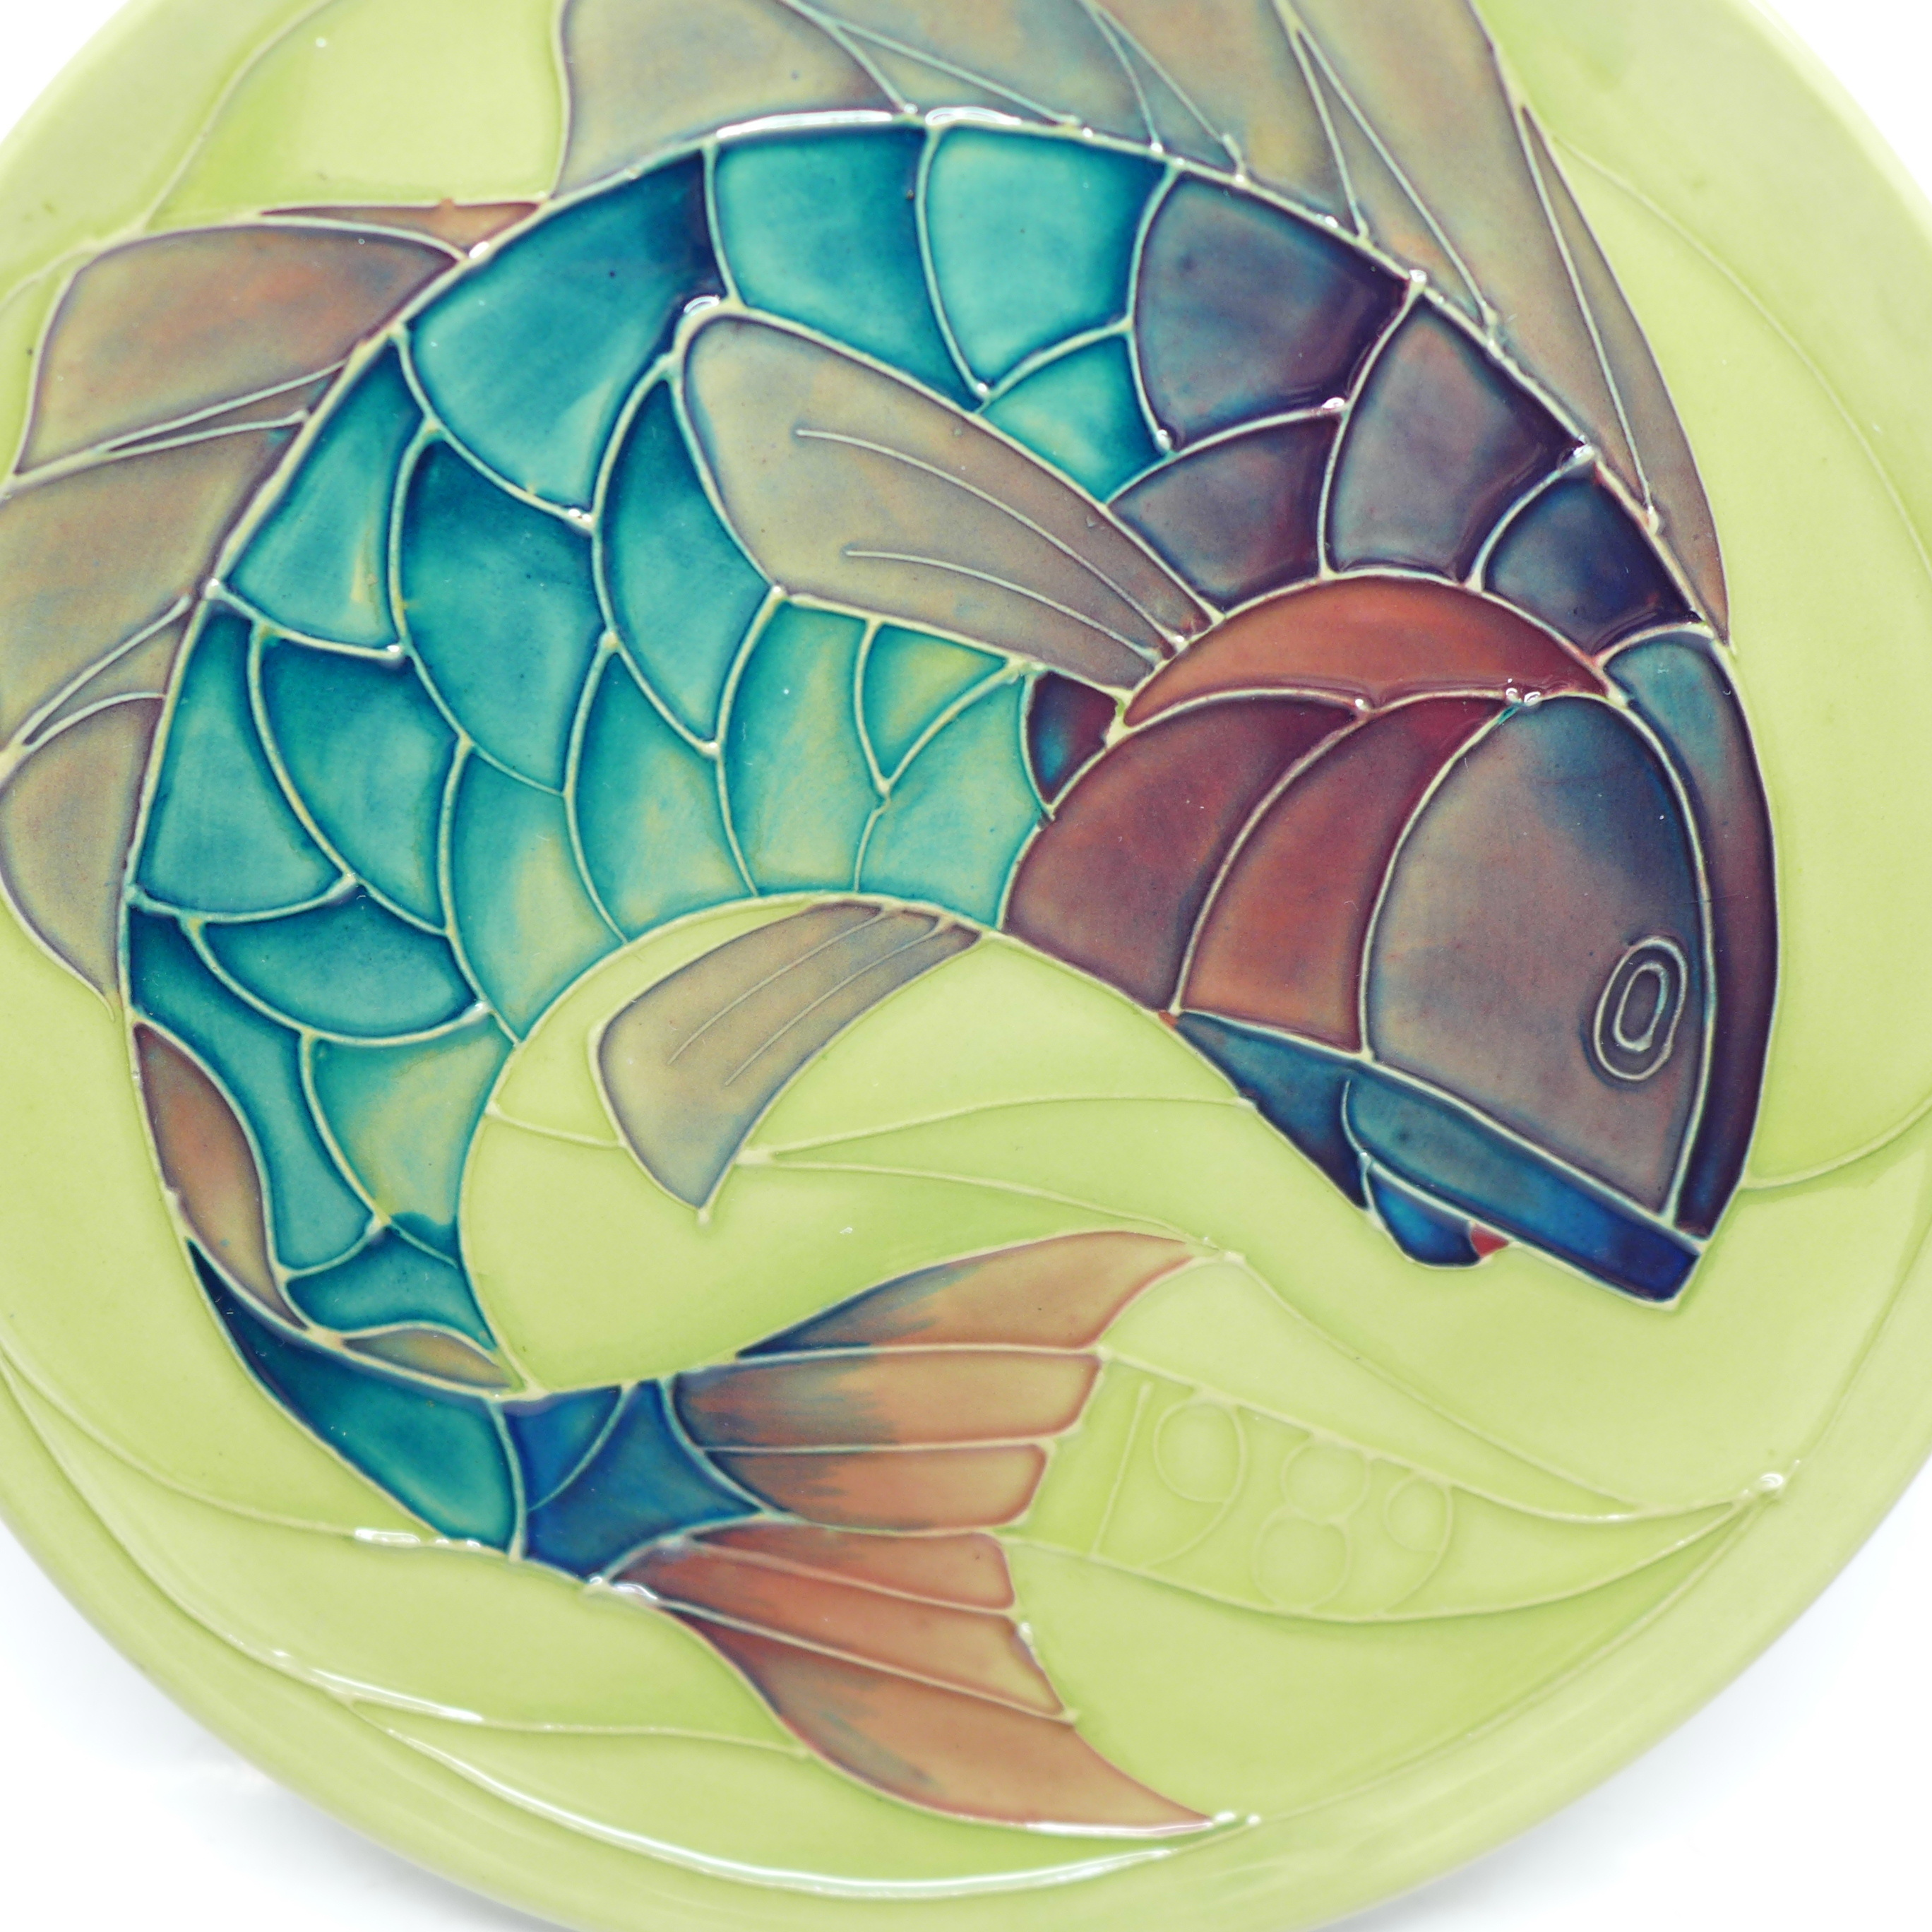 A Moorcroft Limited Edition Year Plate 1989, fish design, 212/250, no box, 218mm - Image 2 of 5